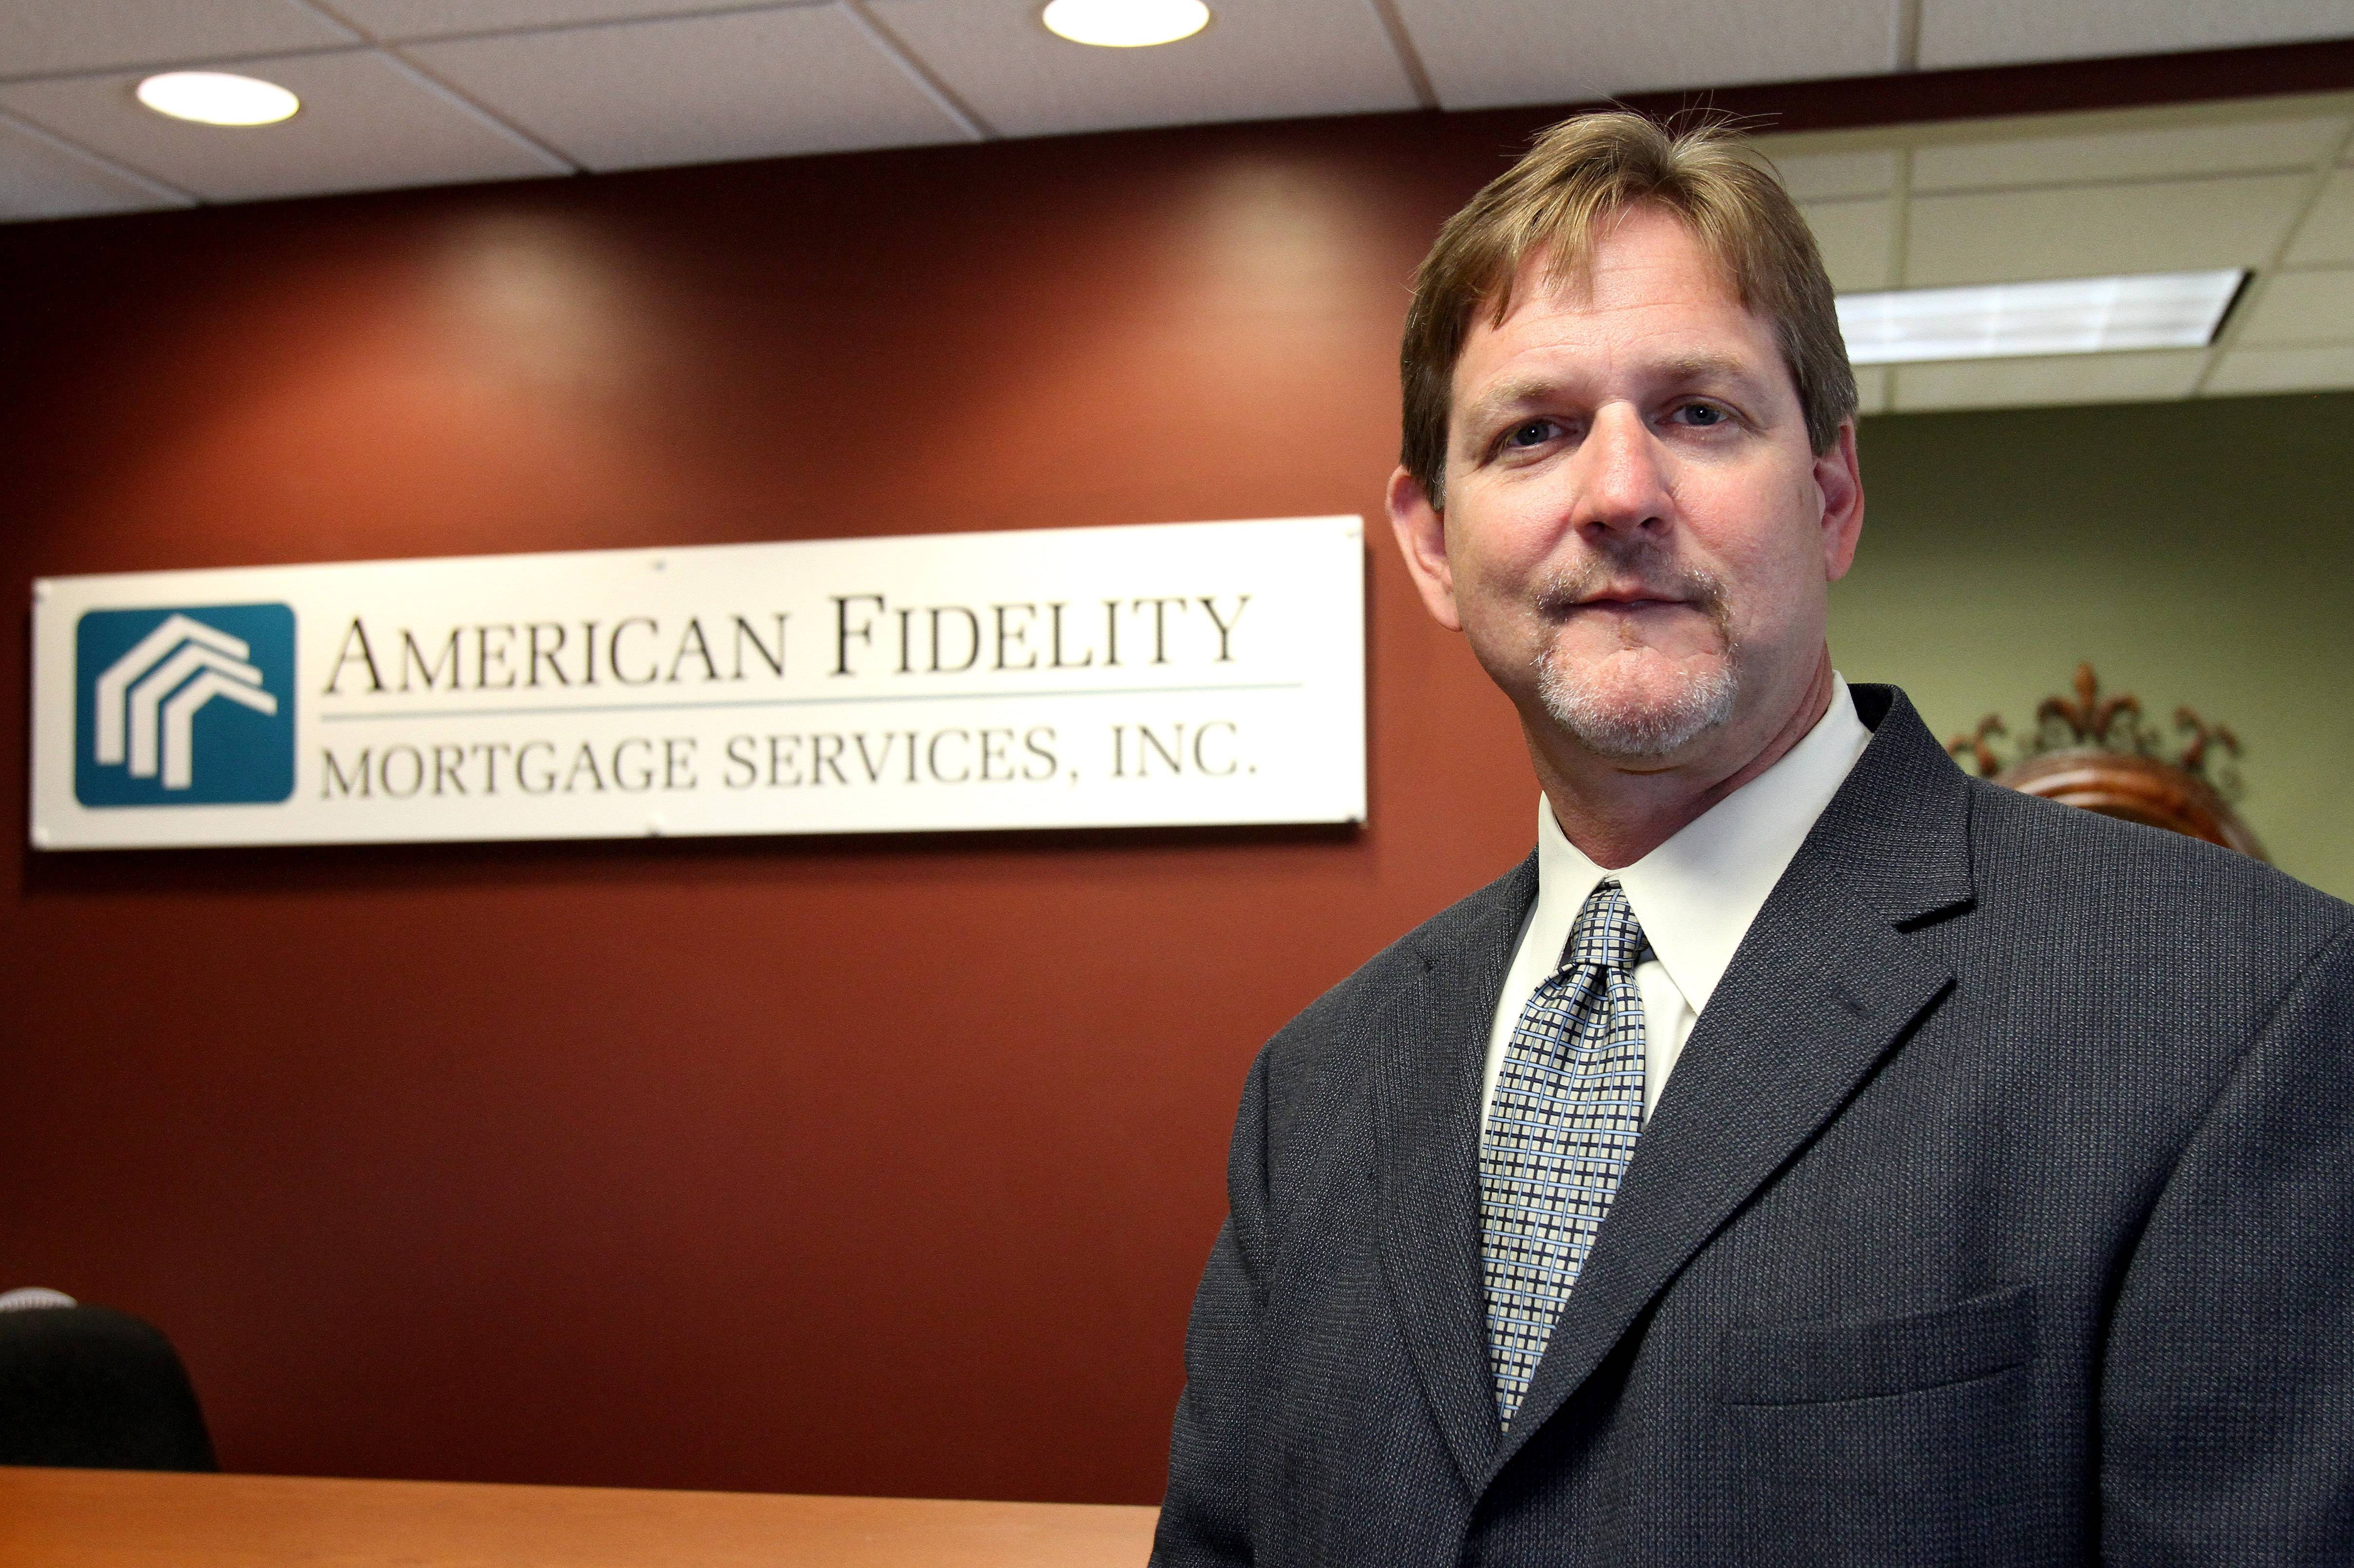 Richard Glover, director of the Reverse Mortgage Division, American Fidelity Mortgage Services in Lisle, says many retirees do not know the intricacies of the reverse mortgage program.